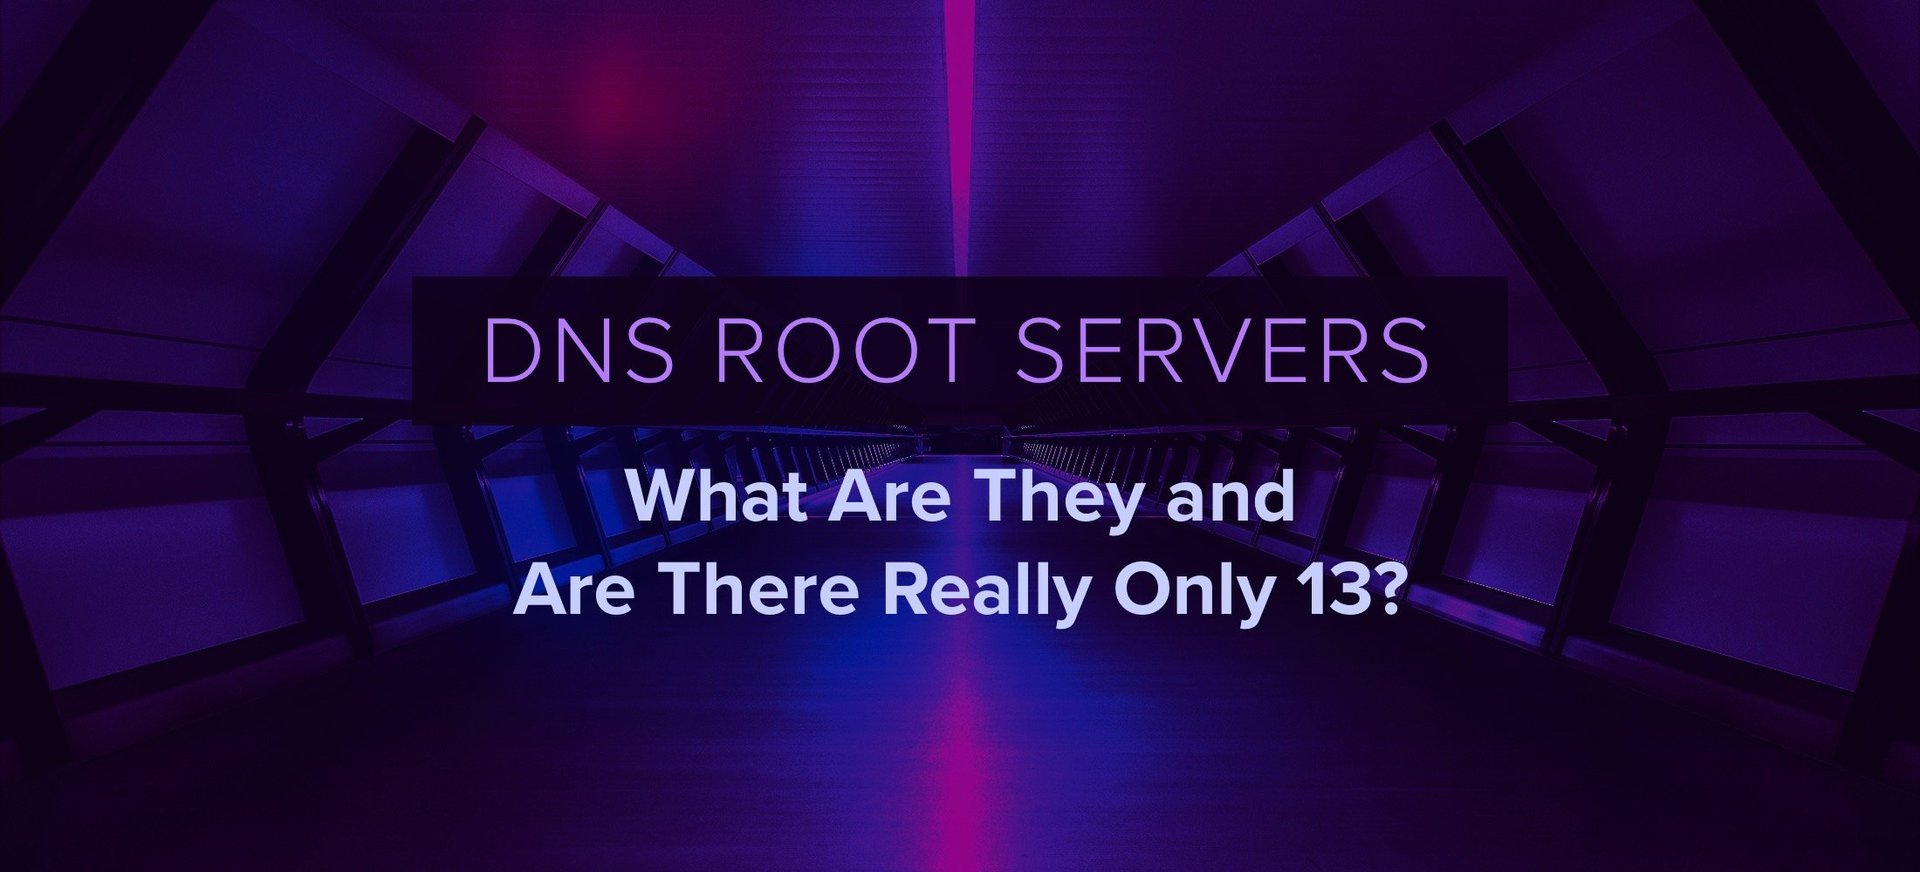 DNS Root Servers: What are they and is there really only 13?